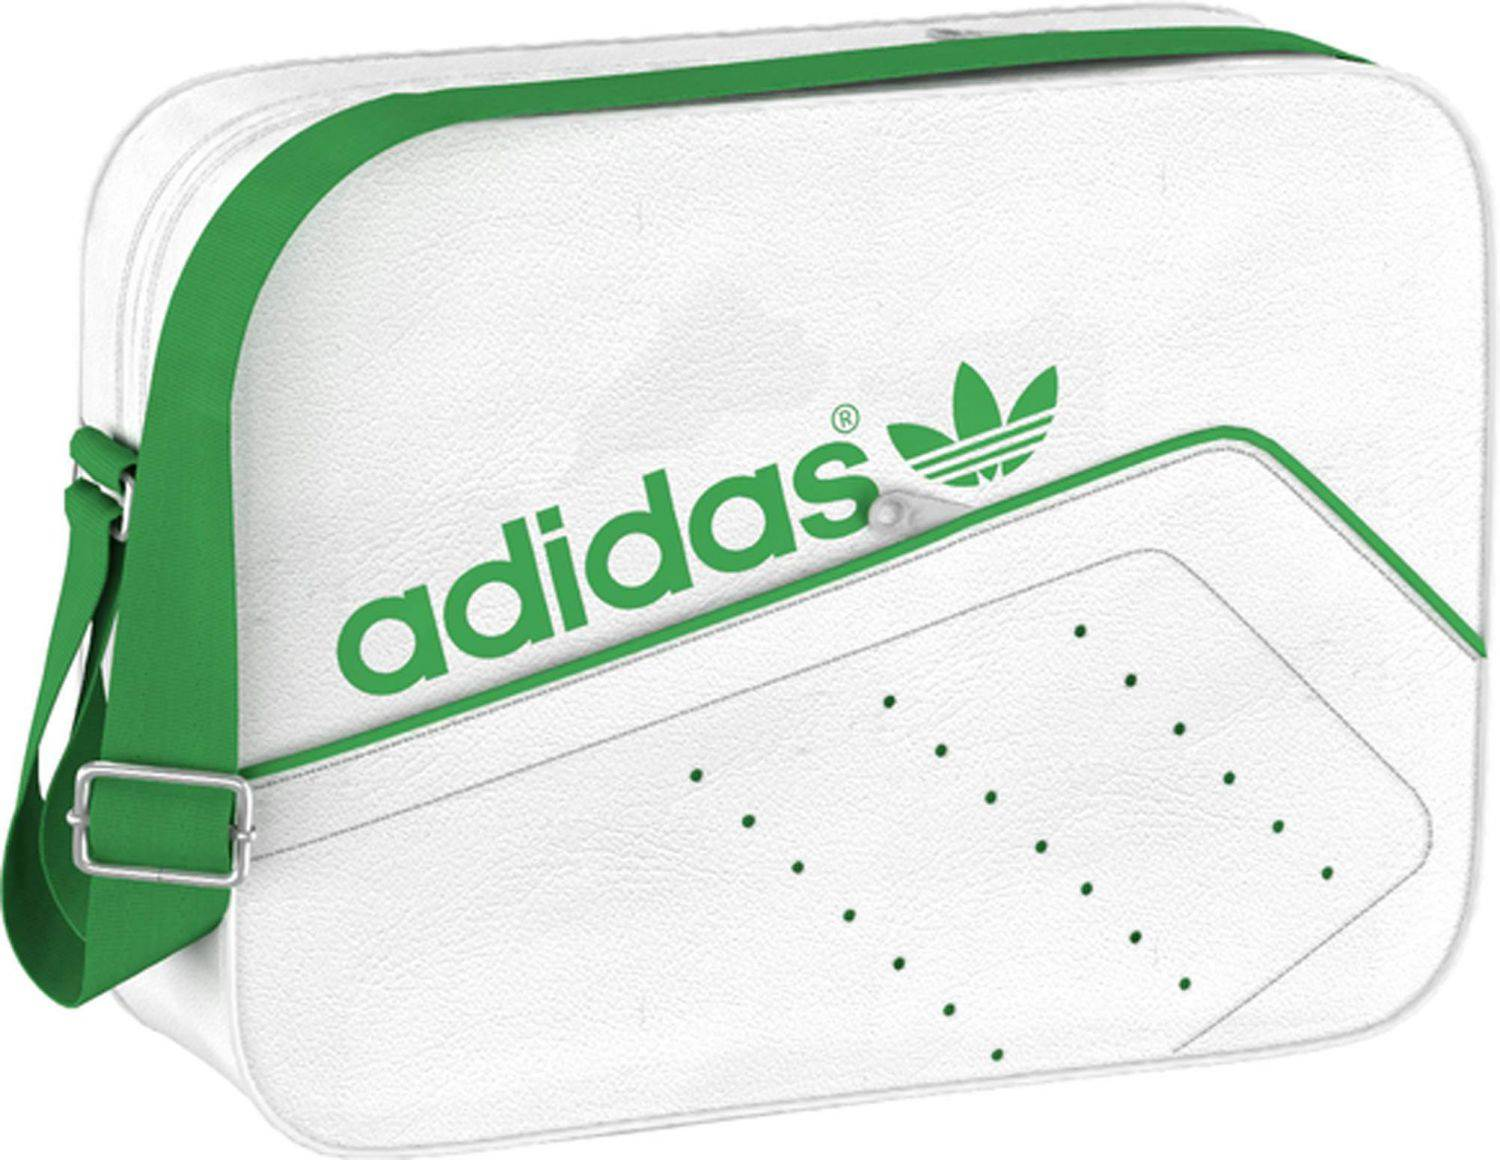 adidas Airliner Perforated Umhängetasche (Farbe: white/green) Sale Angebote